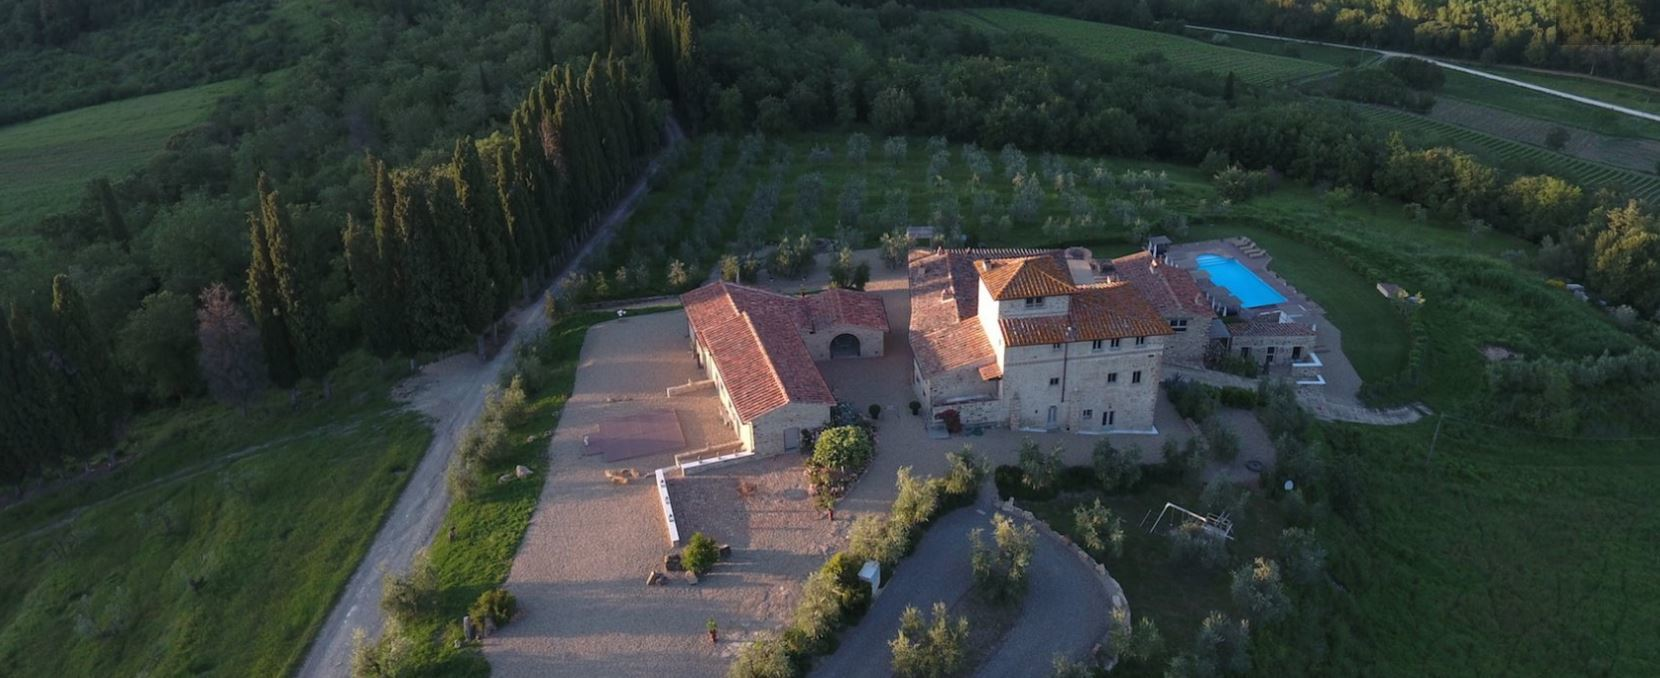 ARIAL VIEW OF THE ESTATE